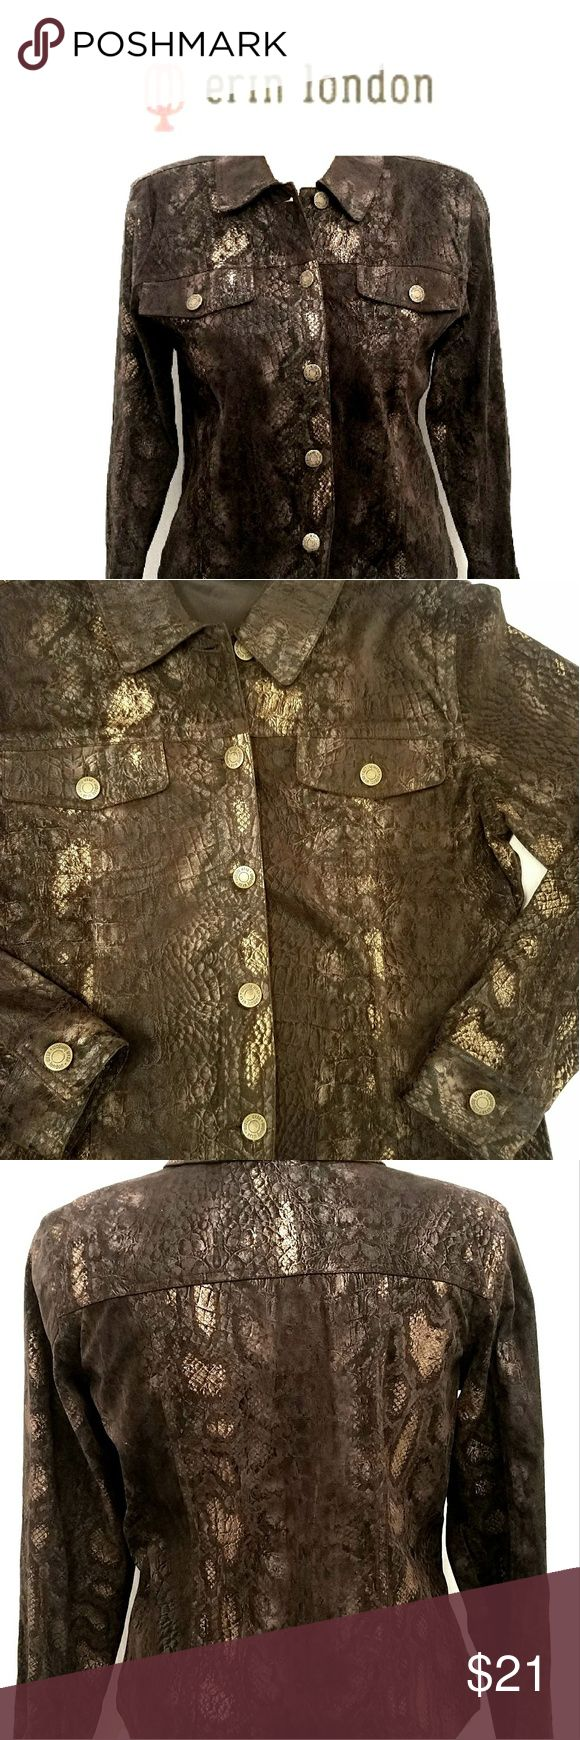 Erin London Brown snakeskin patterned shirt Beautiful Erin London Brown snakeskin patterned long-sleeve button-up shirt size small measures 16 and 1/2 in across the shoulders and 19 in across the chest and its 23 inches long and the sleeves are 19in long and it is 100% polyester and in new condition. Erin London Tops Button Down Shirts